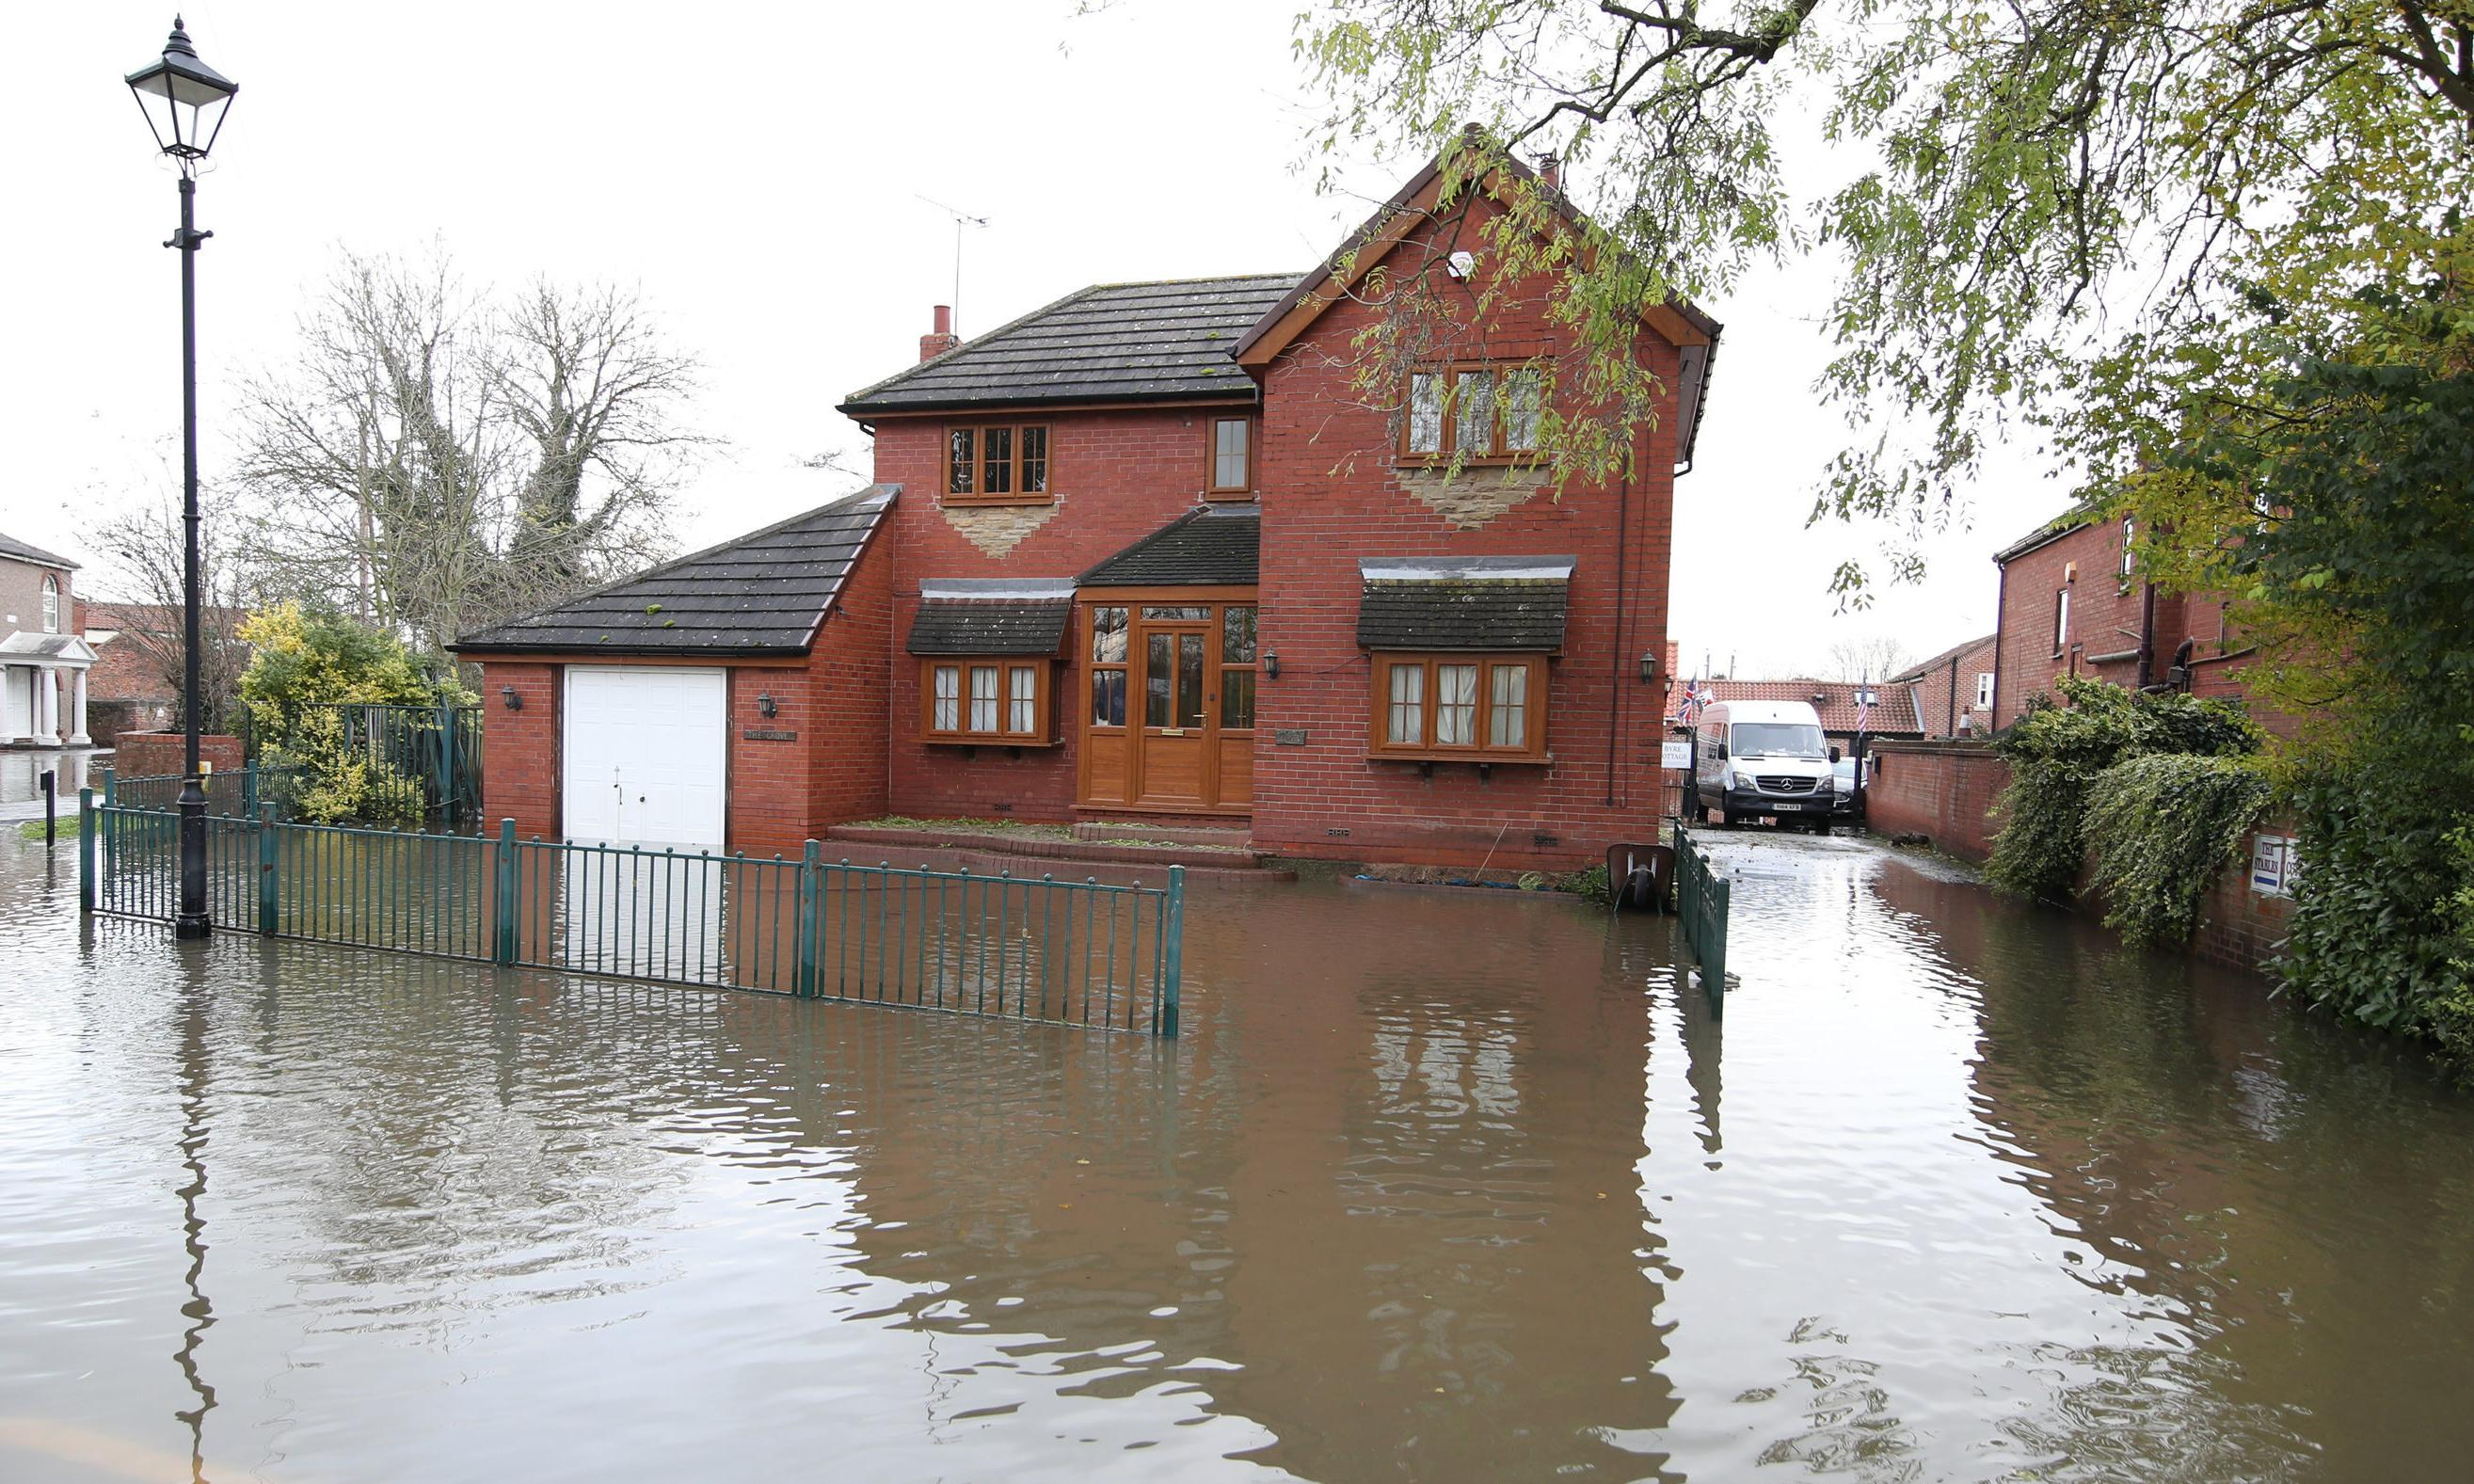 One in 10 new homes in England built on land with high flood risk